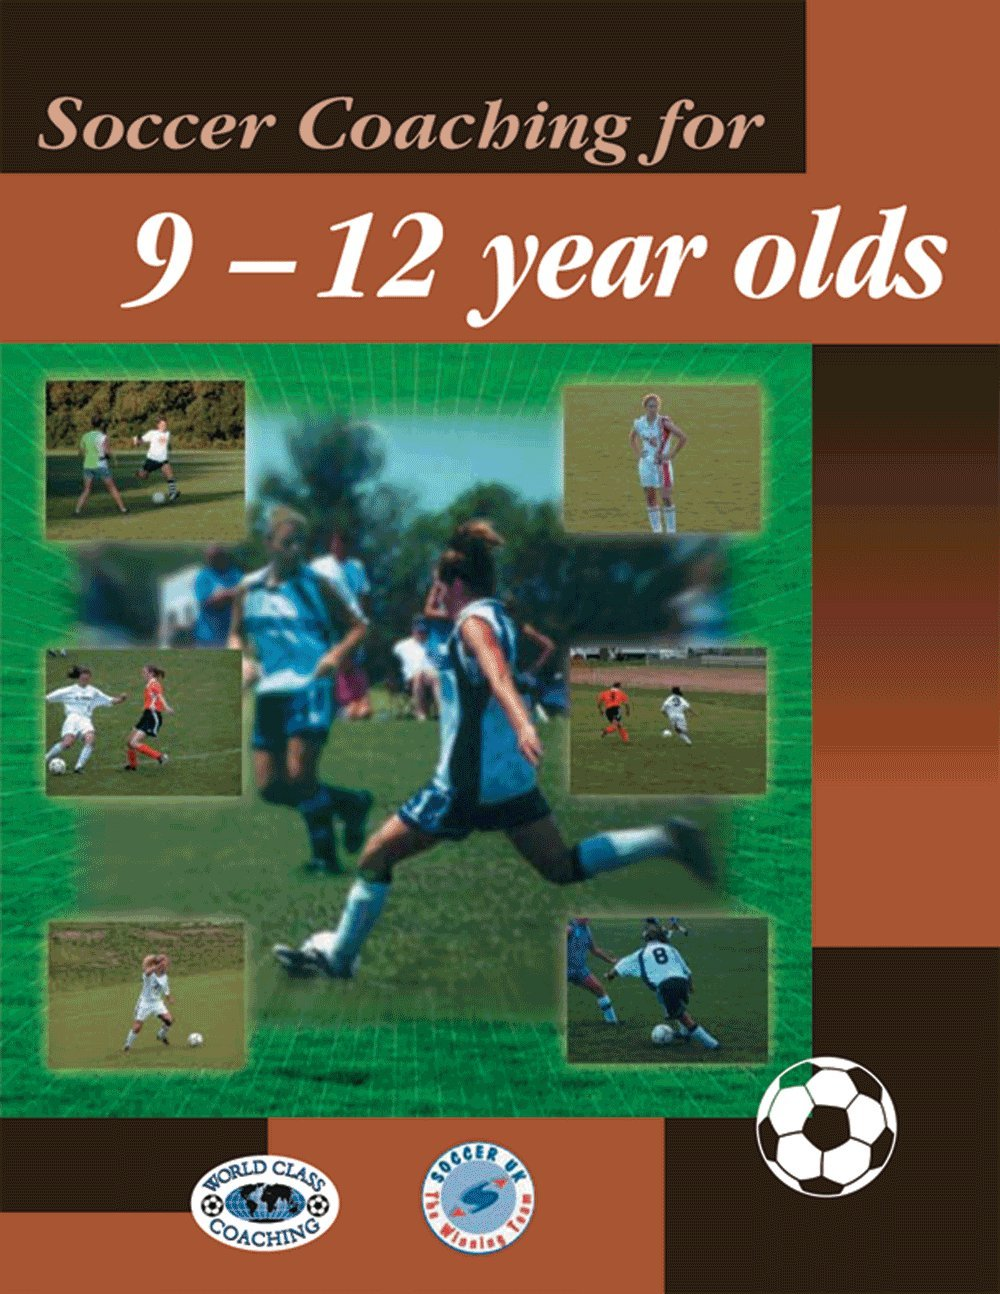 soccer-coaching-for-9-12-year-olds